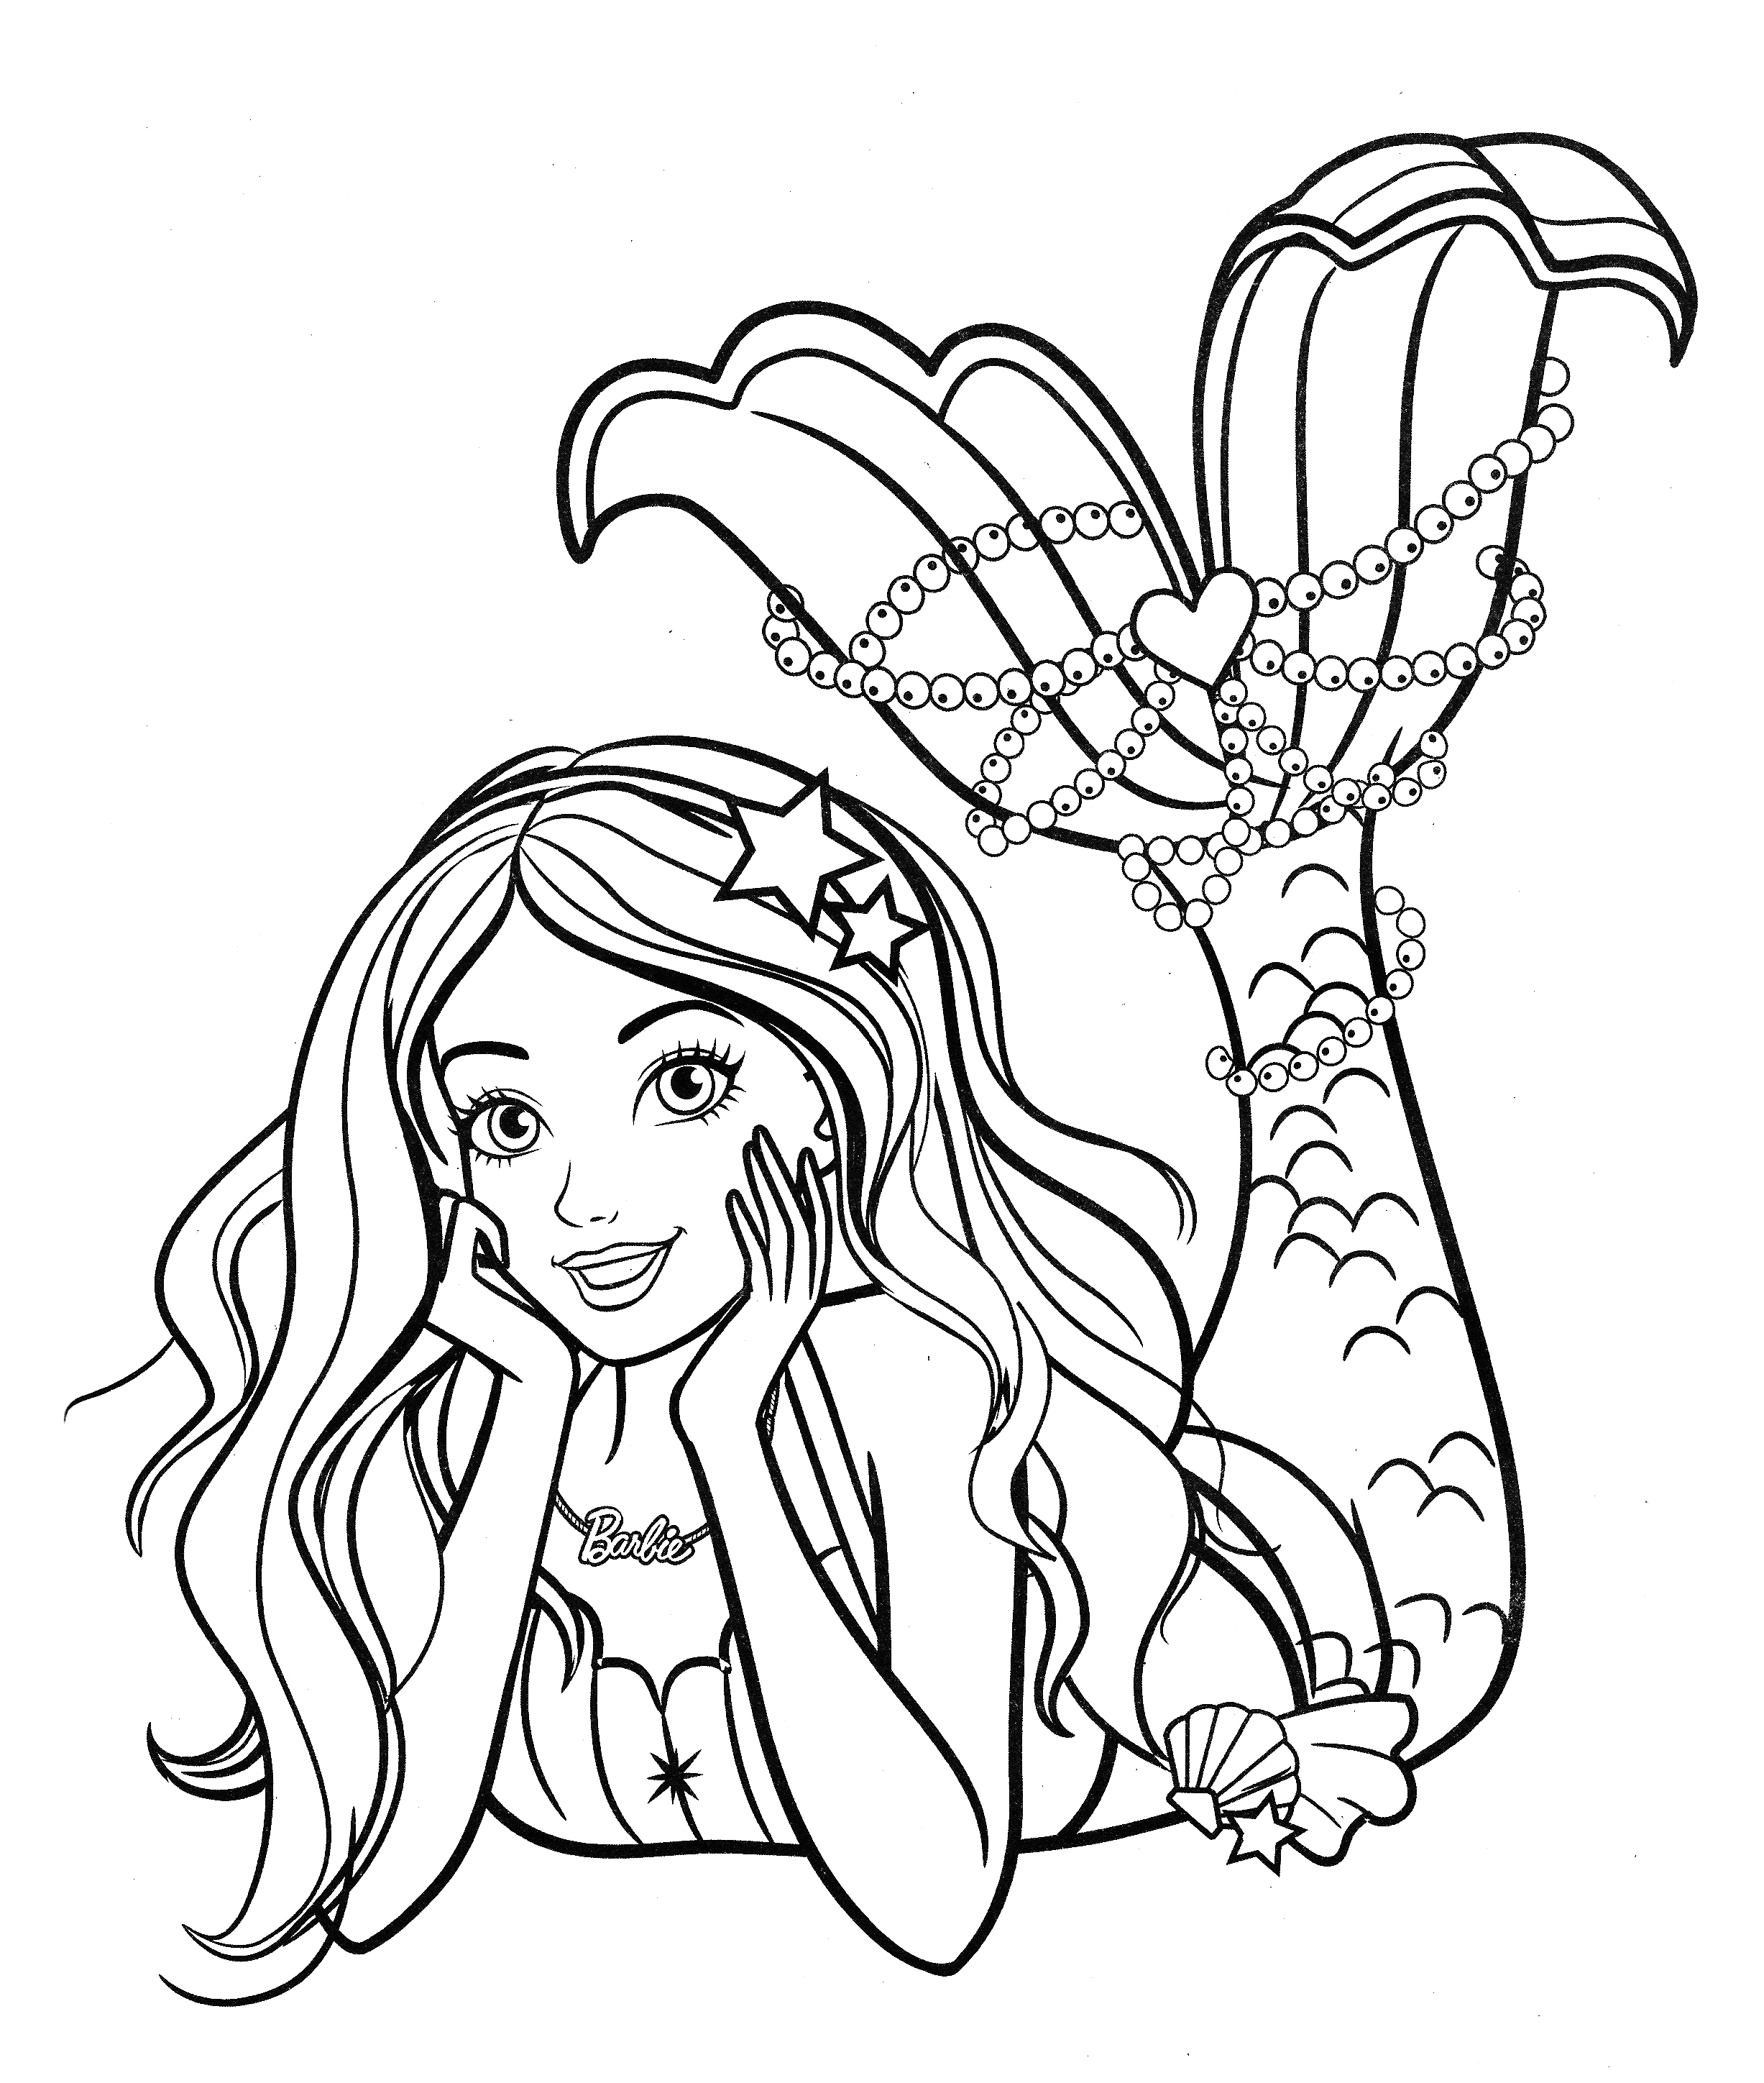 coloring pictures barbie coloring pages barbie free printable coloring pages coloring barbie pictures 1 1